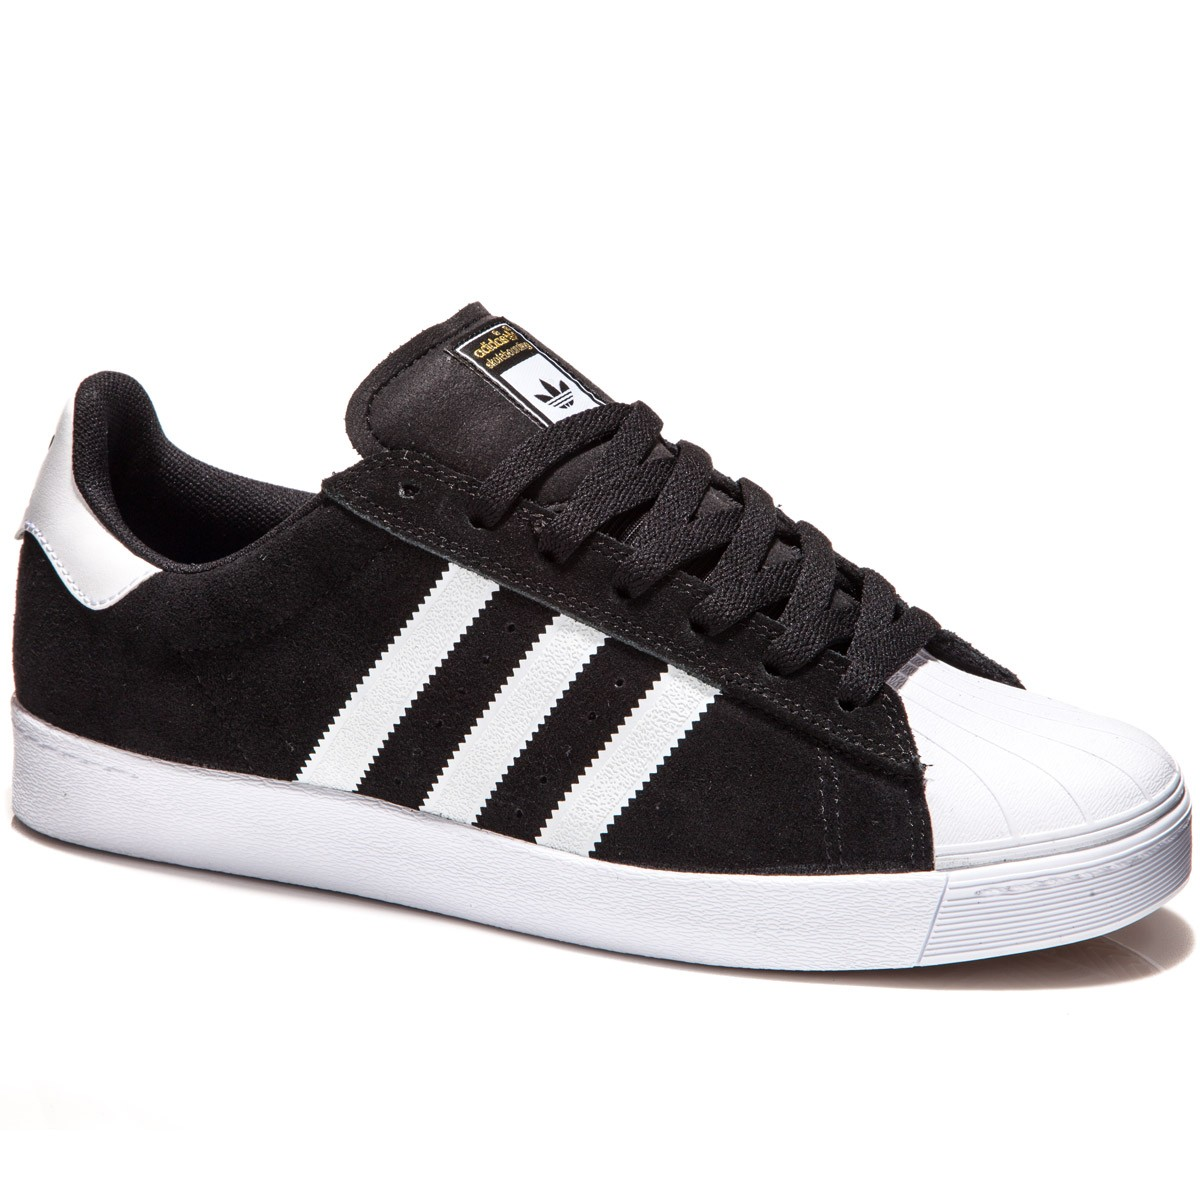 60%OFF Cheap Adidas Men's Superstar Vulc Adv Skate Shoe